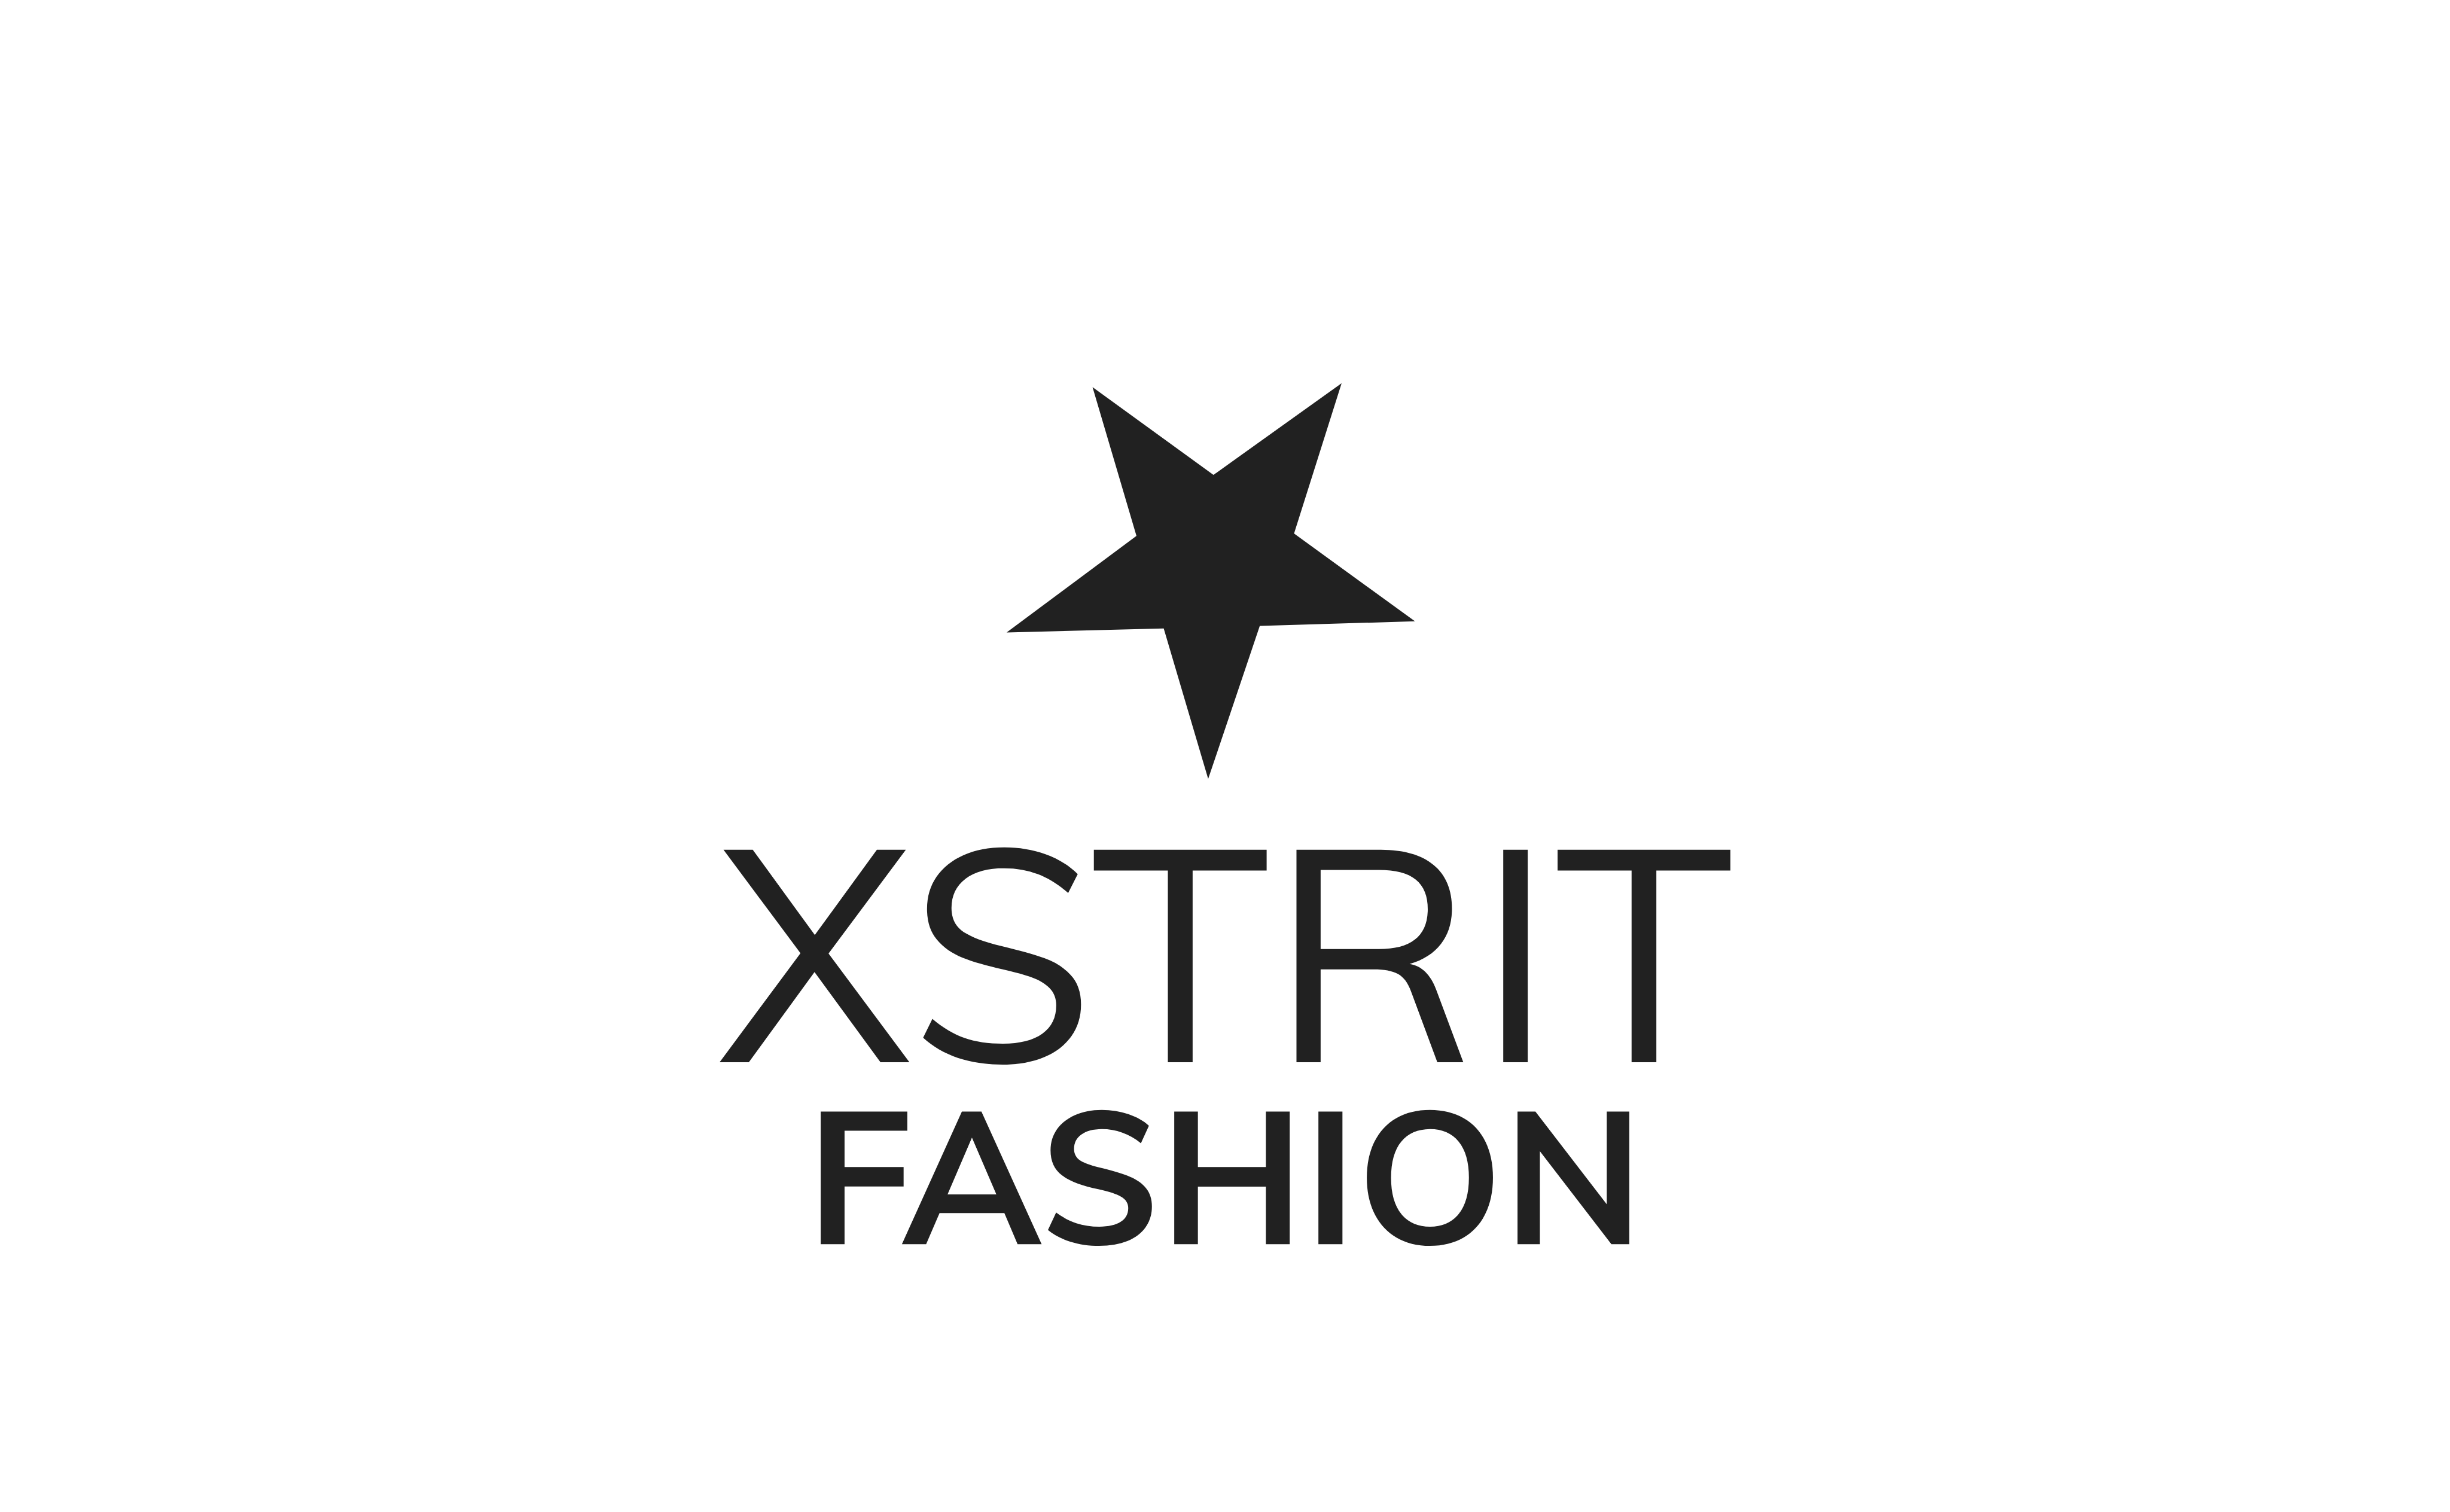 Xstrit Fashion